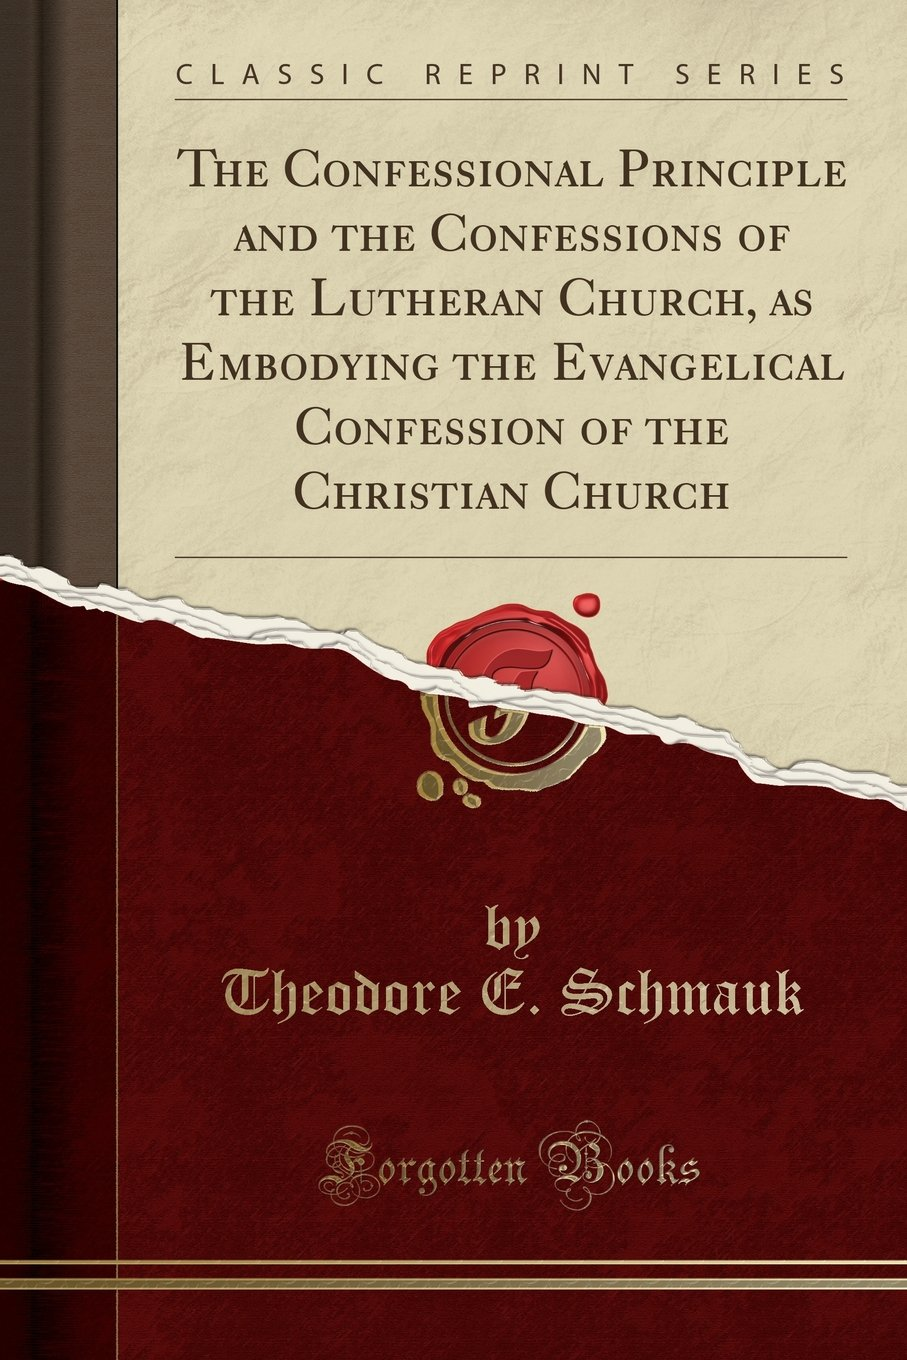 The Confessional Principle and the Confessions of the Lutheran Church, as Embodying the Evangelical Confession of the Christian Church (Classic Reprint) pdf